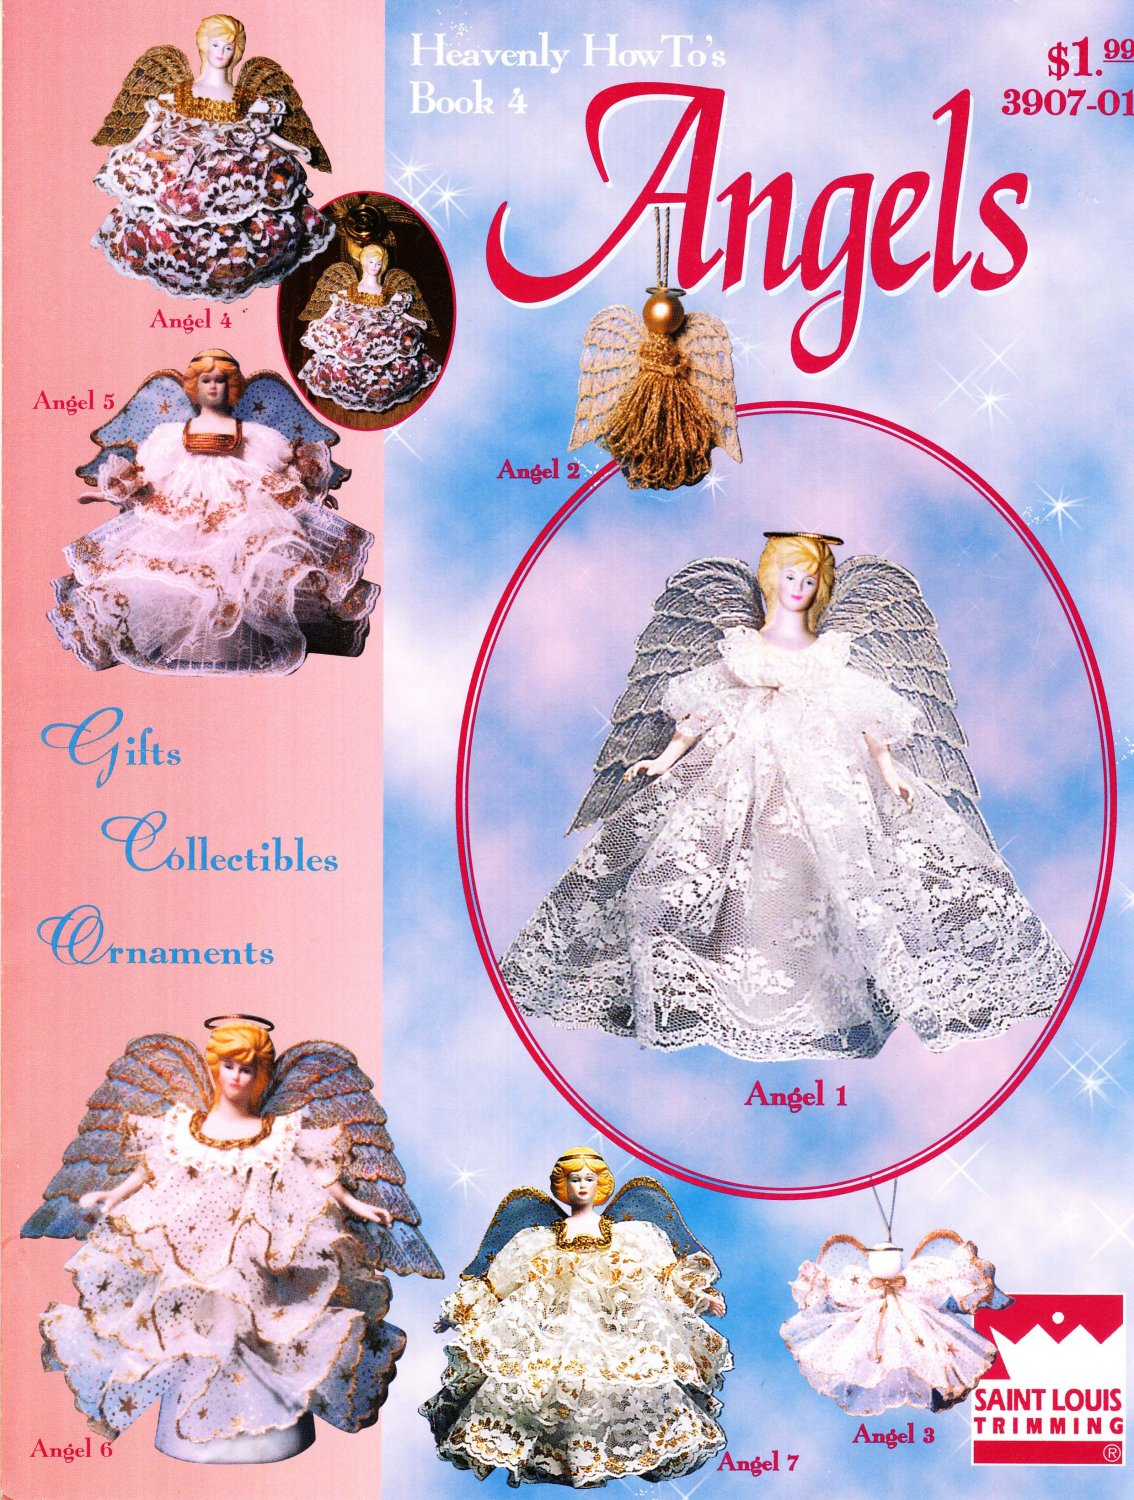 Heavenly How To's Book 4 Angels